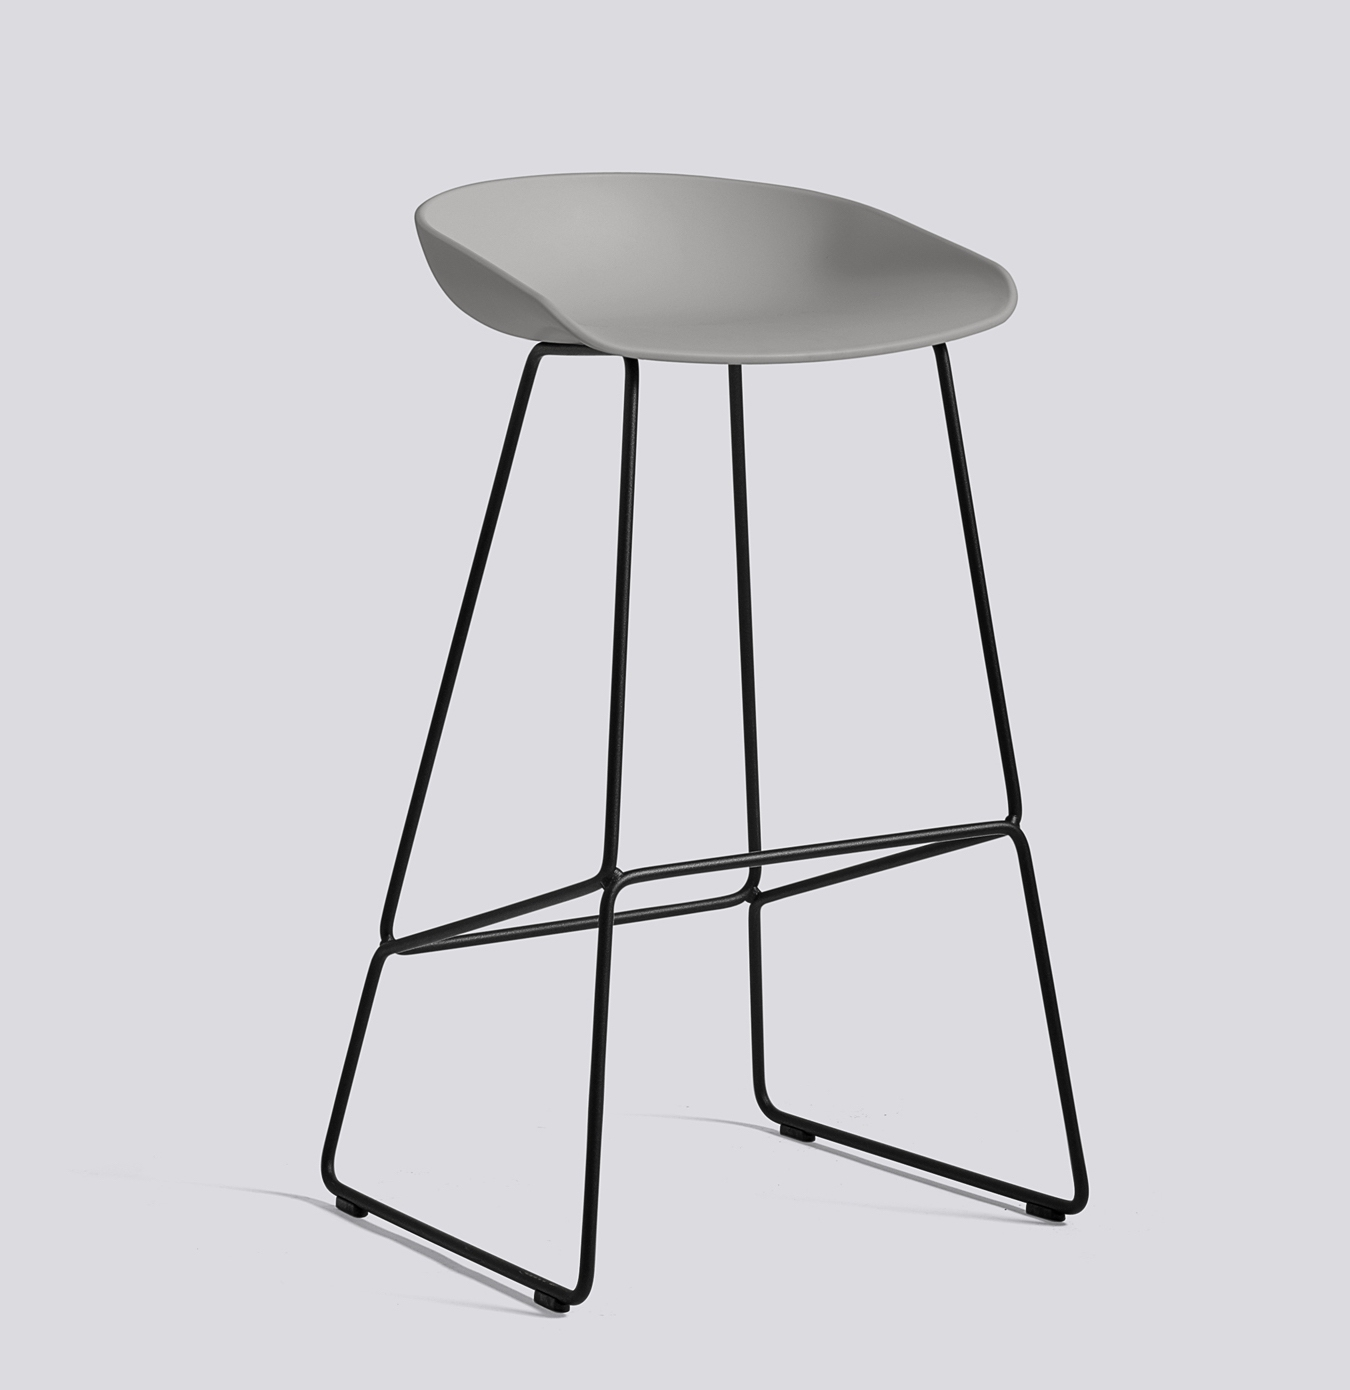 HAY About a Stool 38 schwarz concrete grey